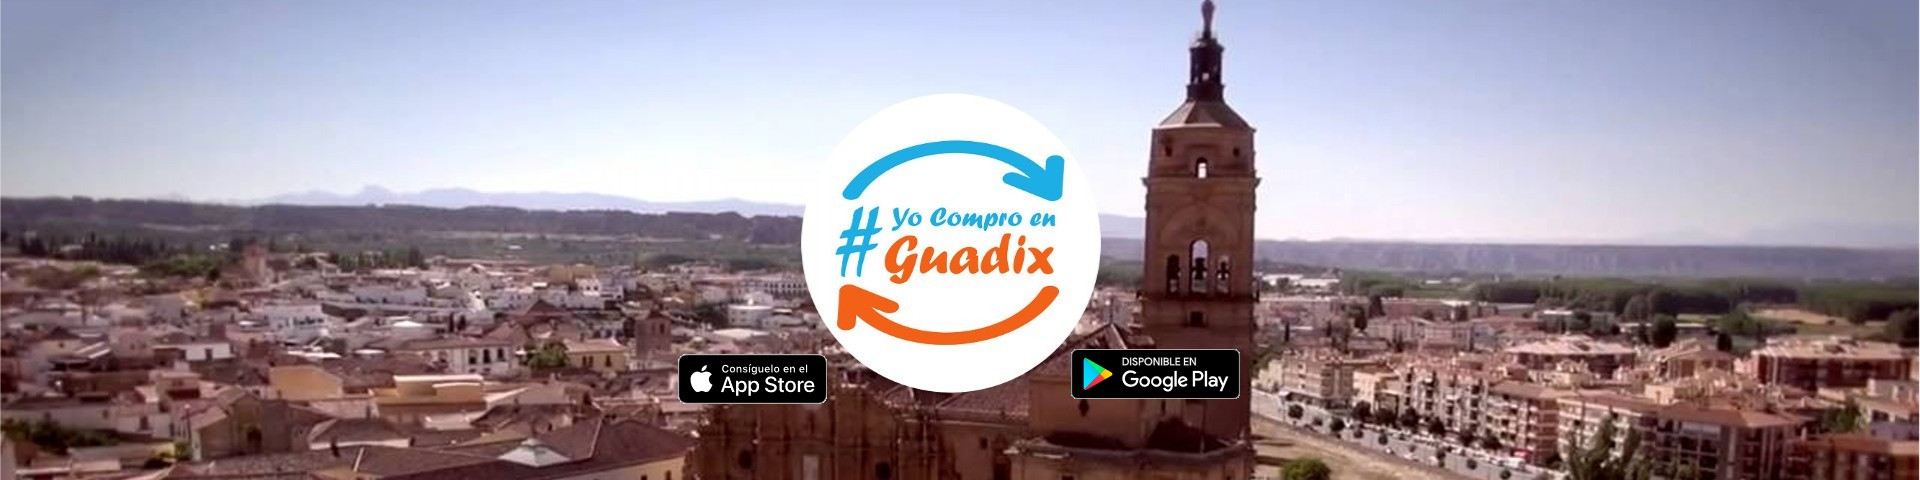 App de #yocomproenguadix ya disponible para descargar desde Android e IOS